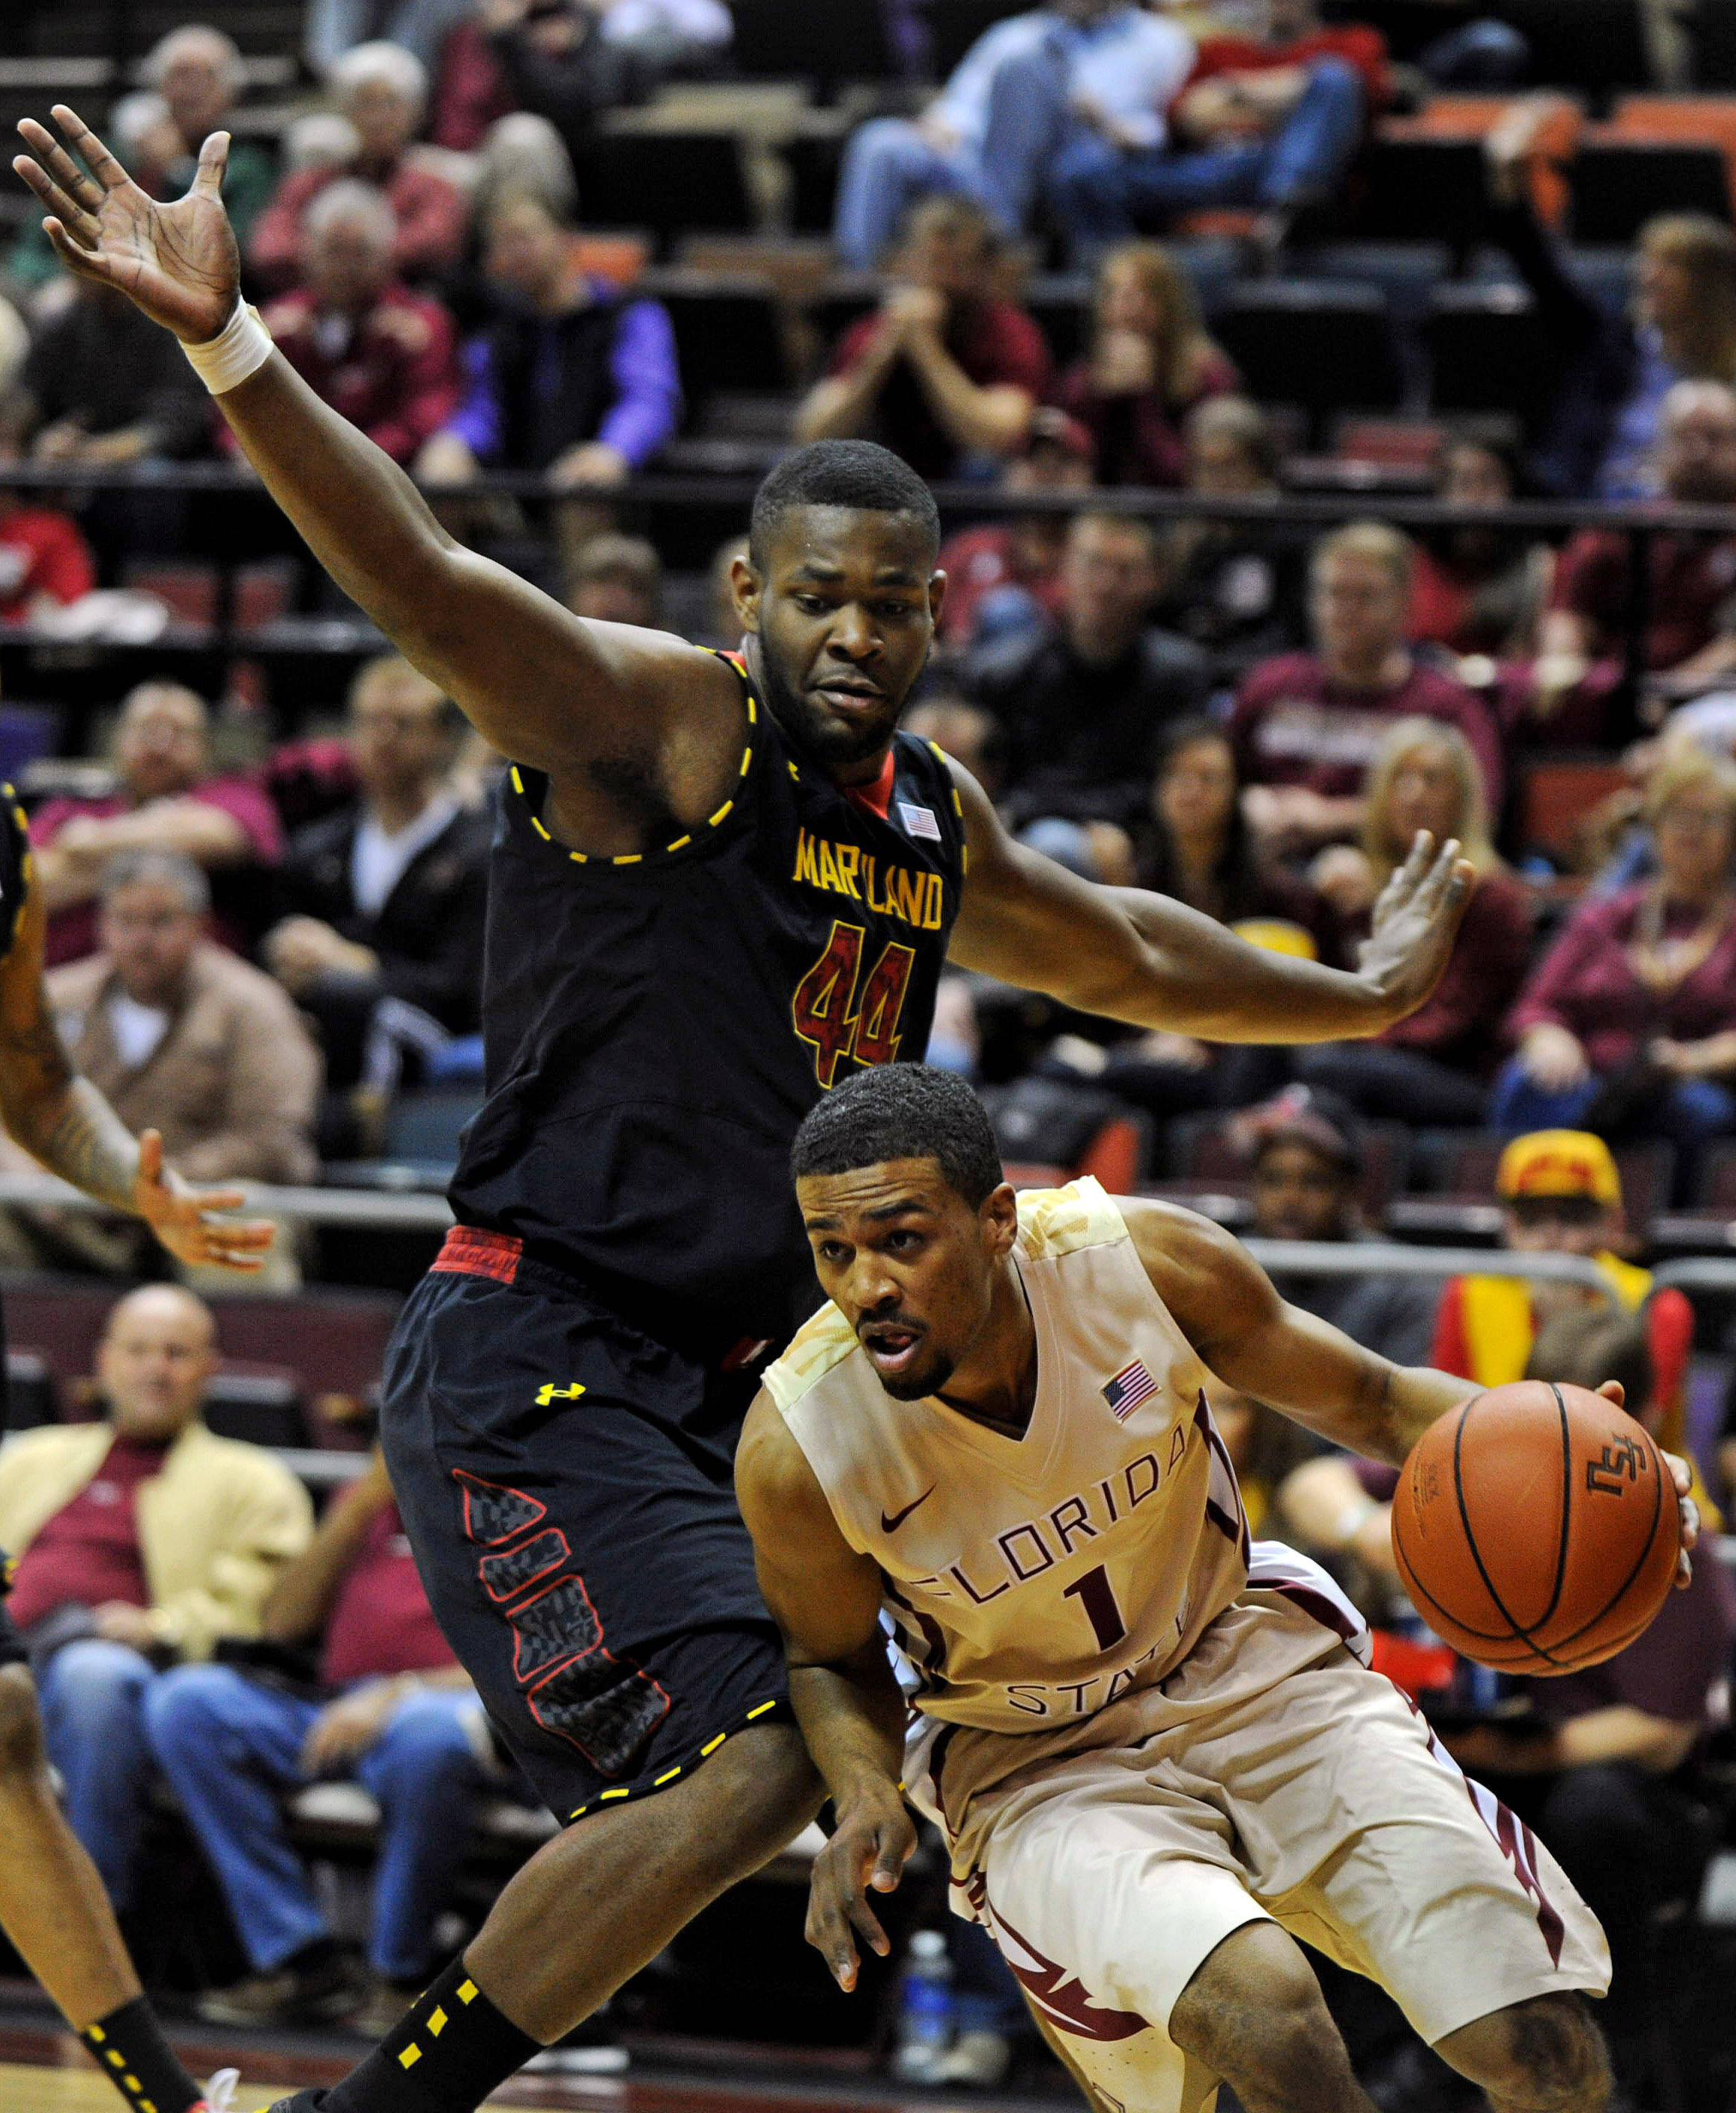 Jan 12, 2014; Tallahassee, FL, USA; Florida State Seminoles guard Devon Bookert (1) moves the ball past Maryland Terrapins center Shaquille Cleare (44) during the first half at Donald L. Tucker Center. Mandatory Credit: Melina Vastola-USA TODAY Sports